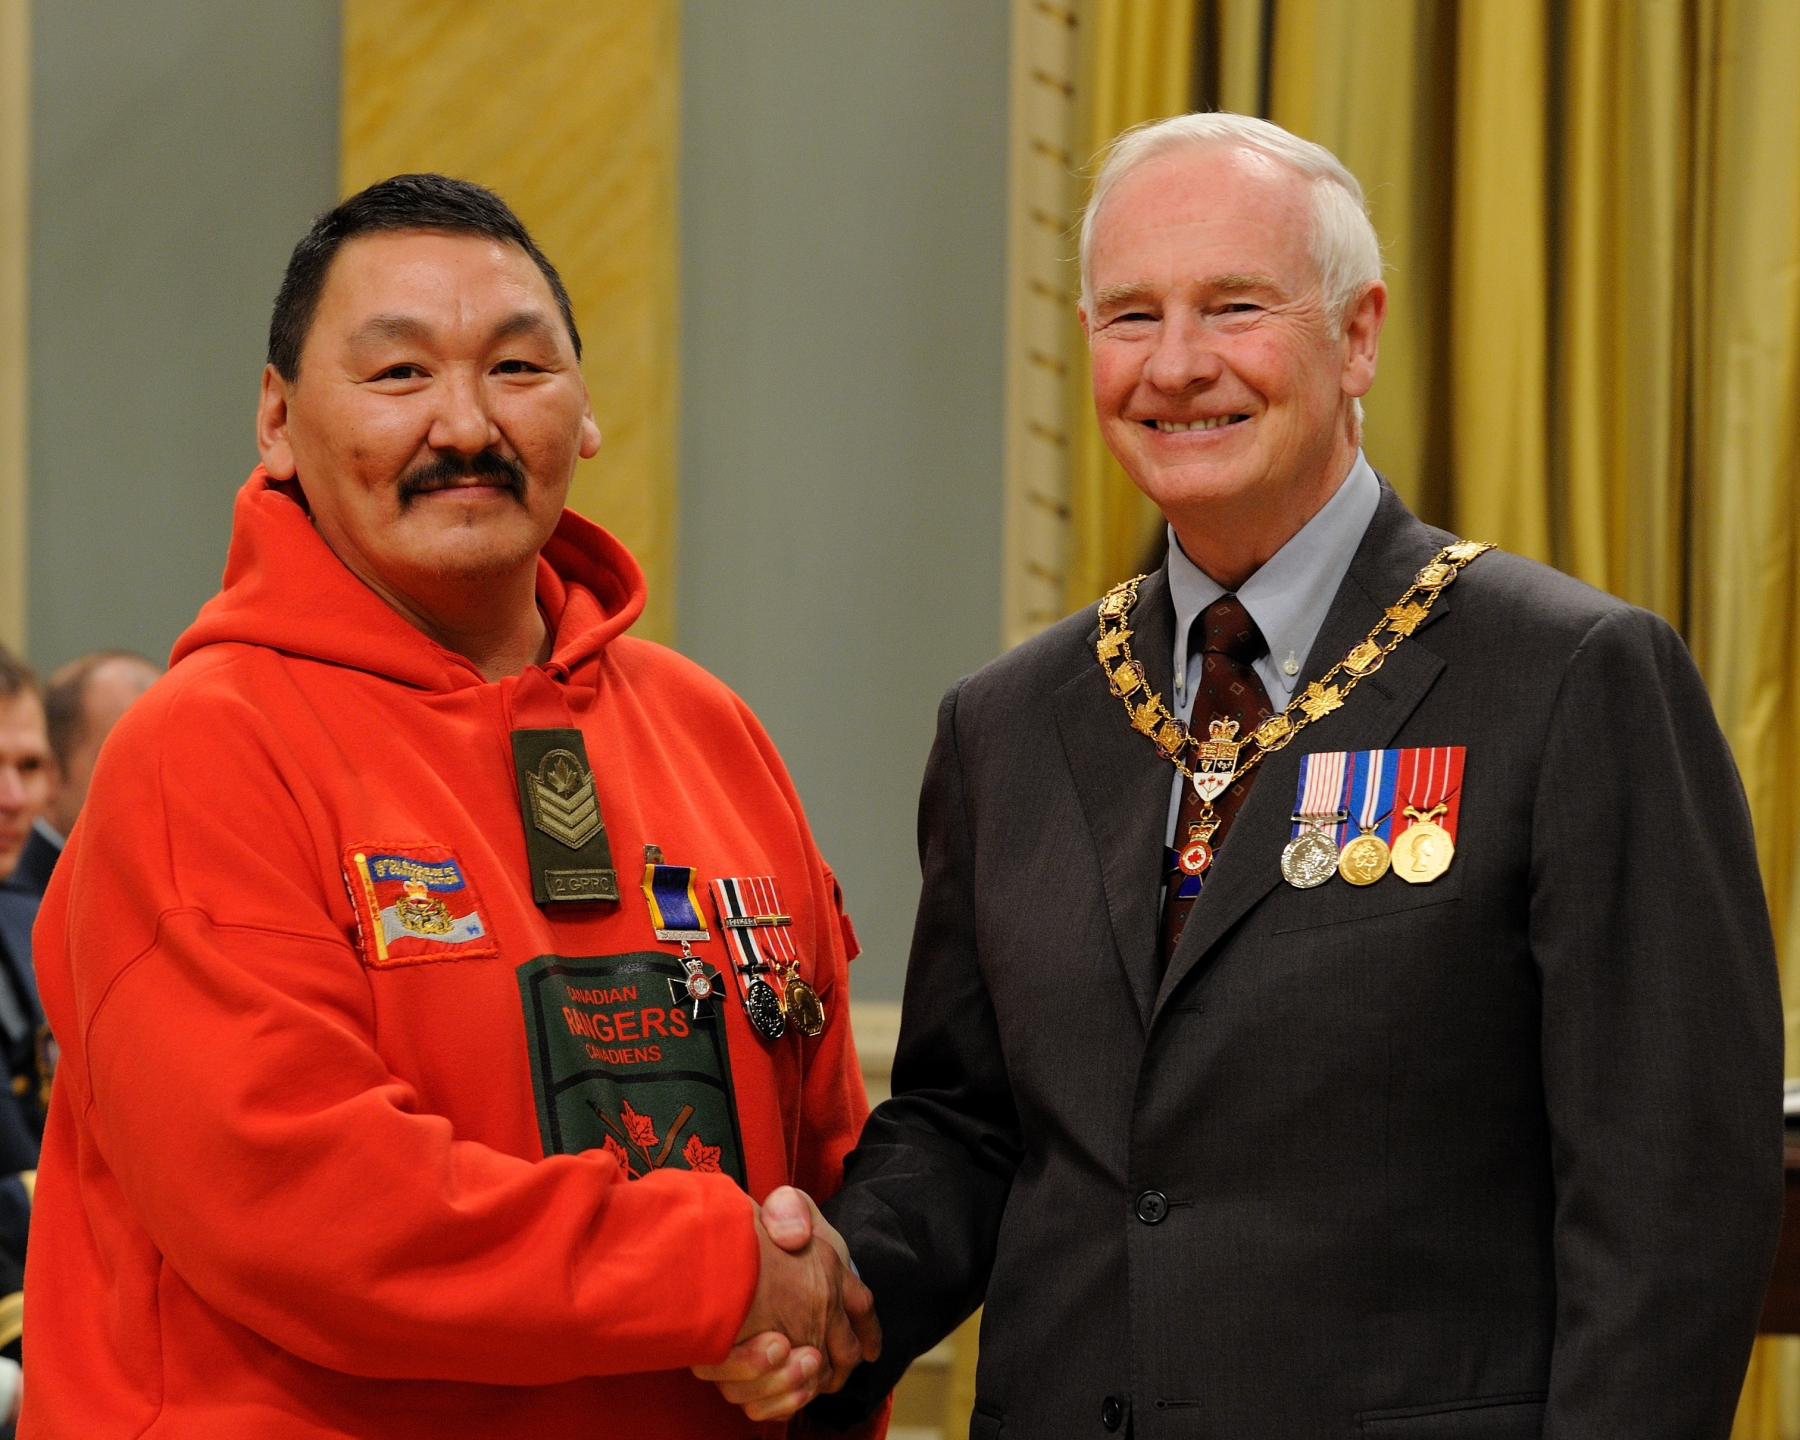 His Excellency presented the Order of Military Merit at the Member level (M.M.M.) to Sergeant Markusi Qinuajuak, M.M.M., C.D., 2nd Canadian Ranger Patrol Group, Richelain, Quebec.